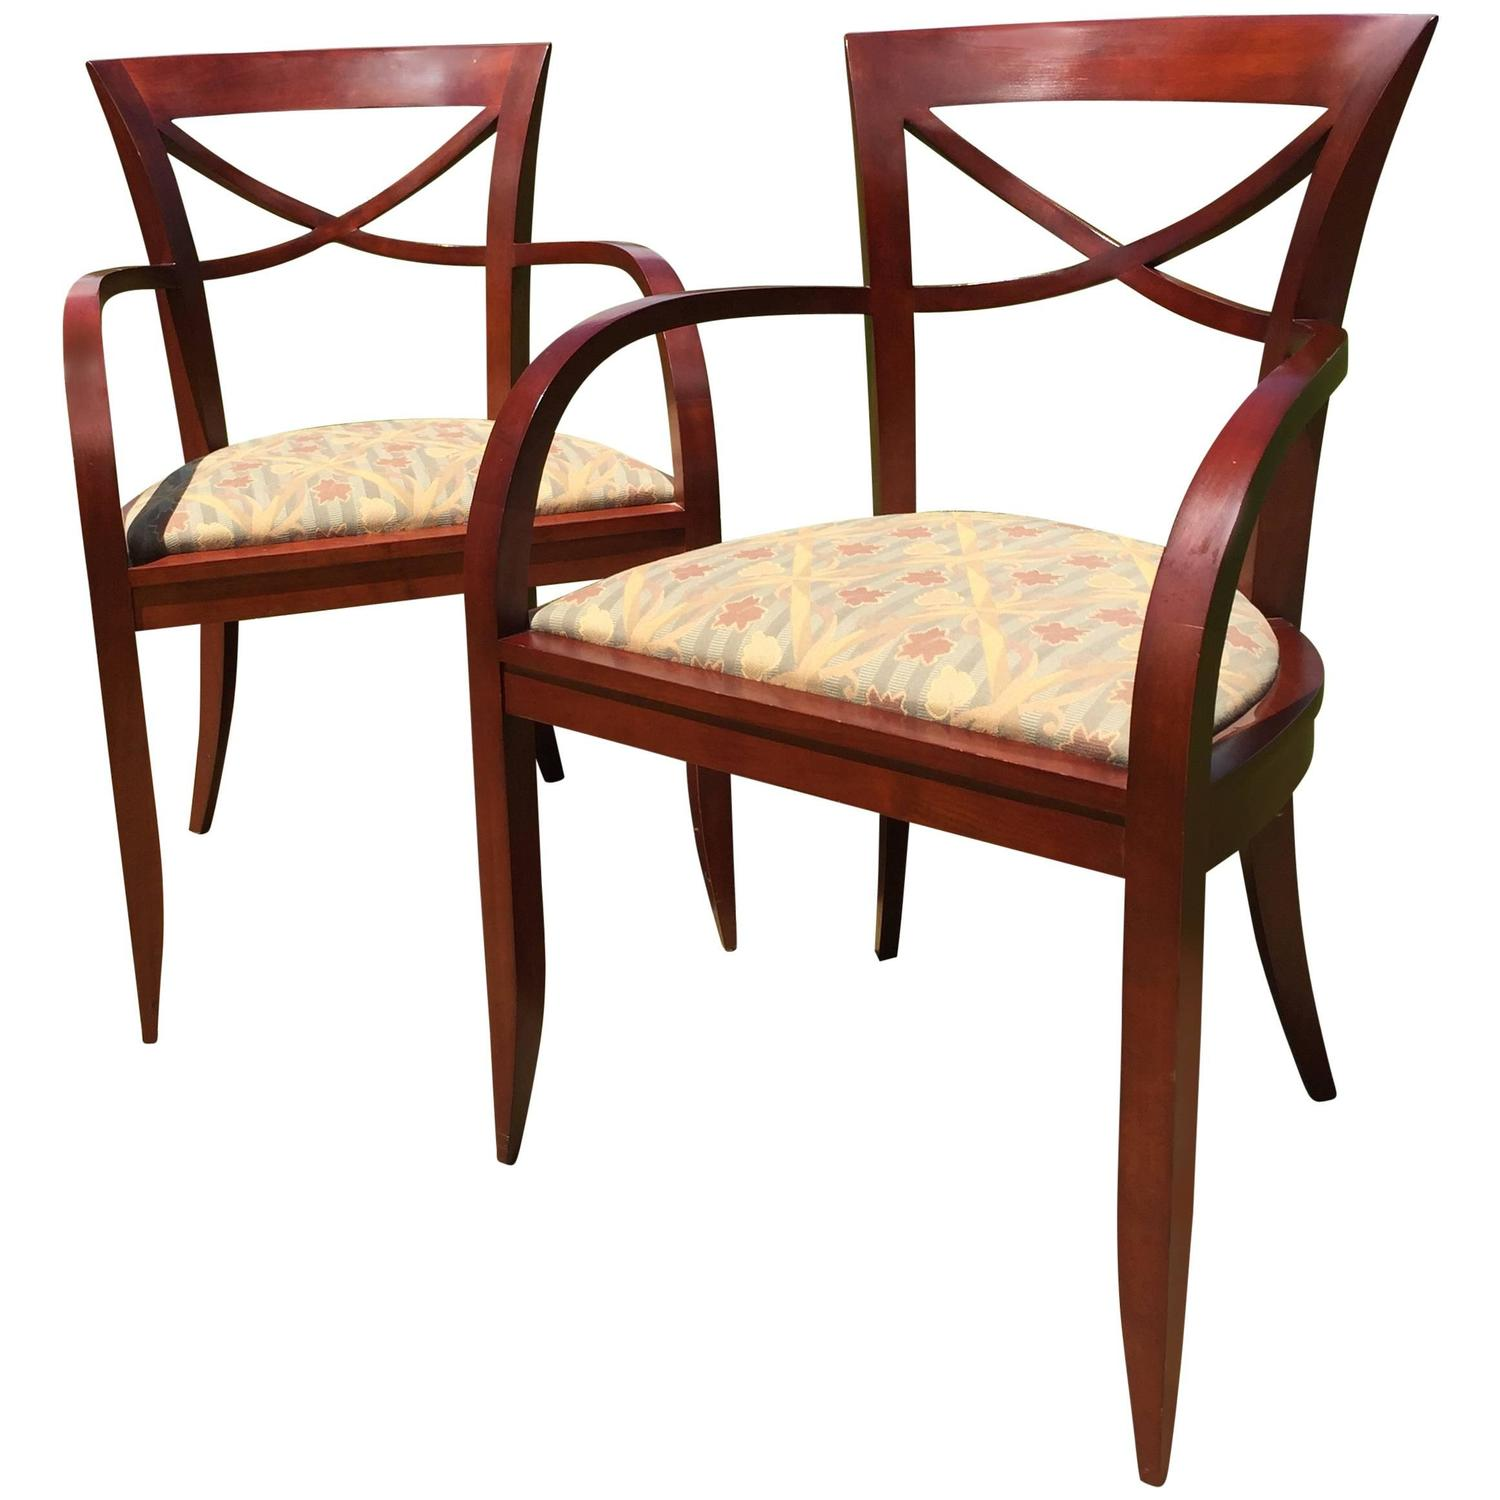 Pair of Armchairs by David Edward made of Cherrywood Baltimore